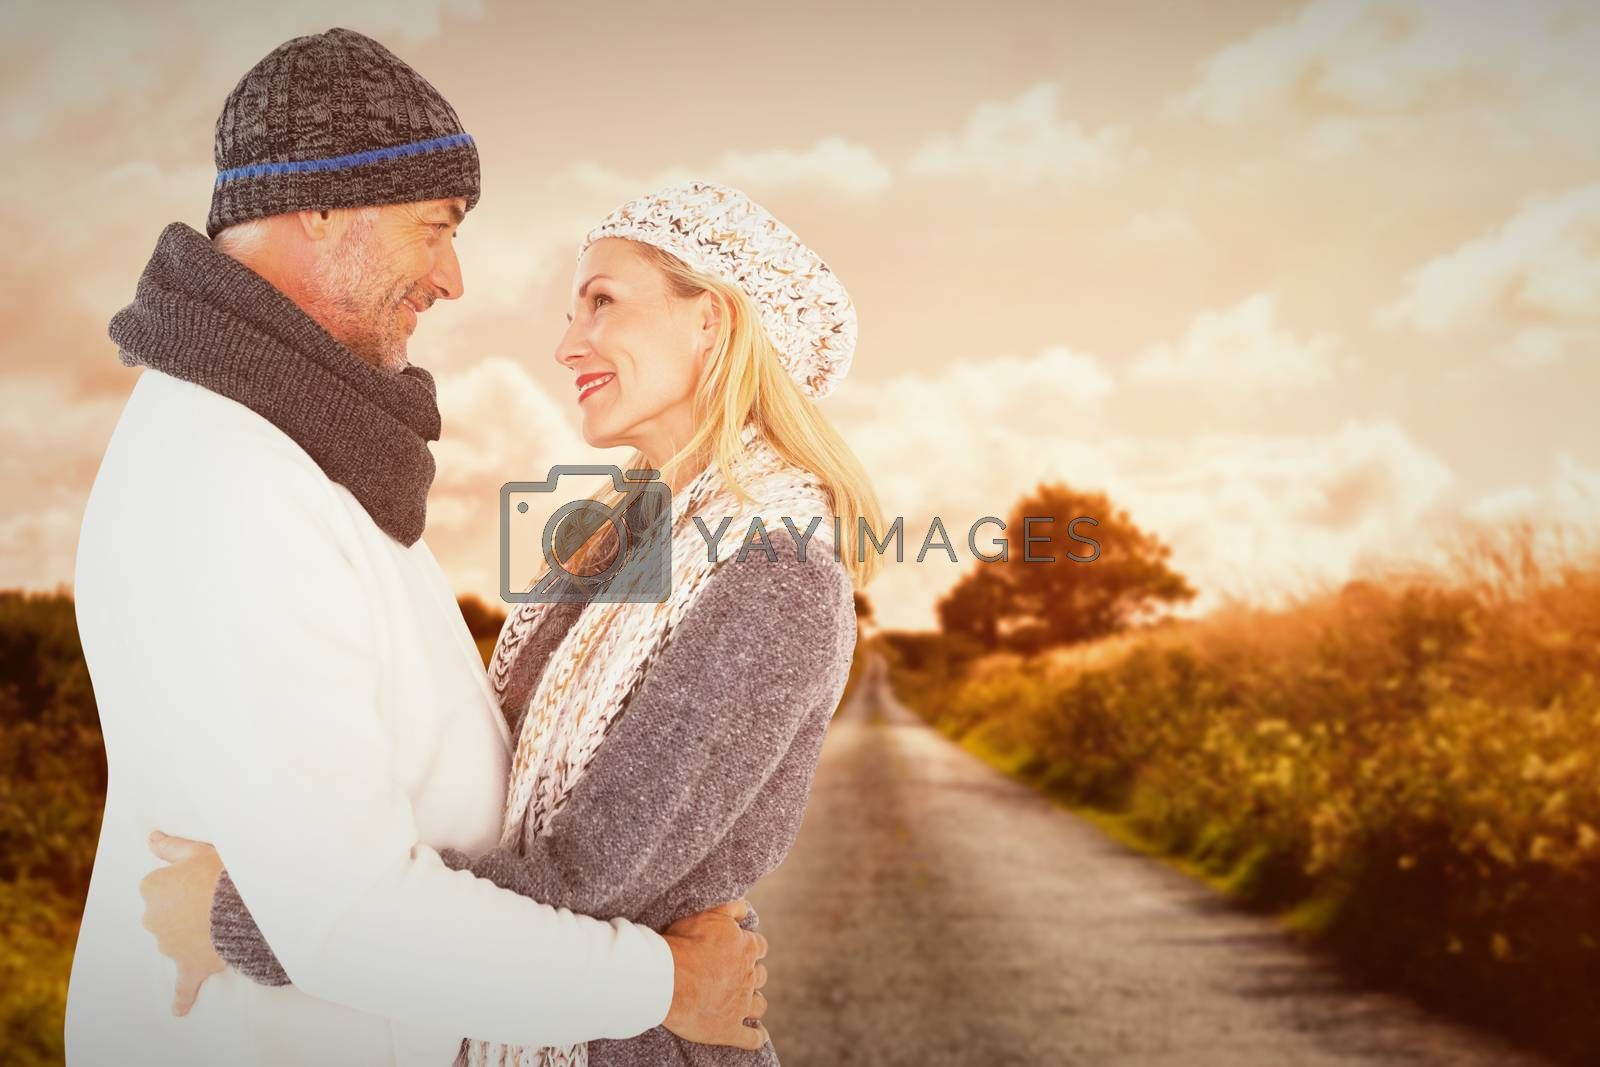 Happy husband holding wife while looking at each other against country road